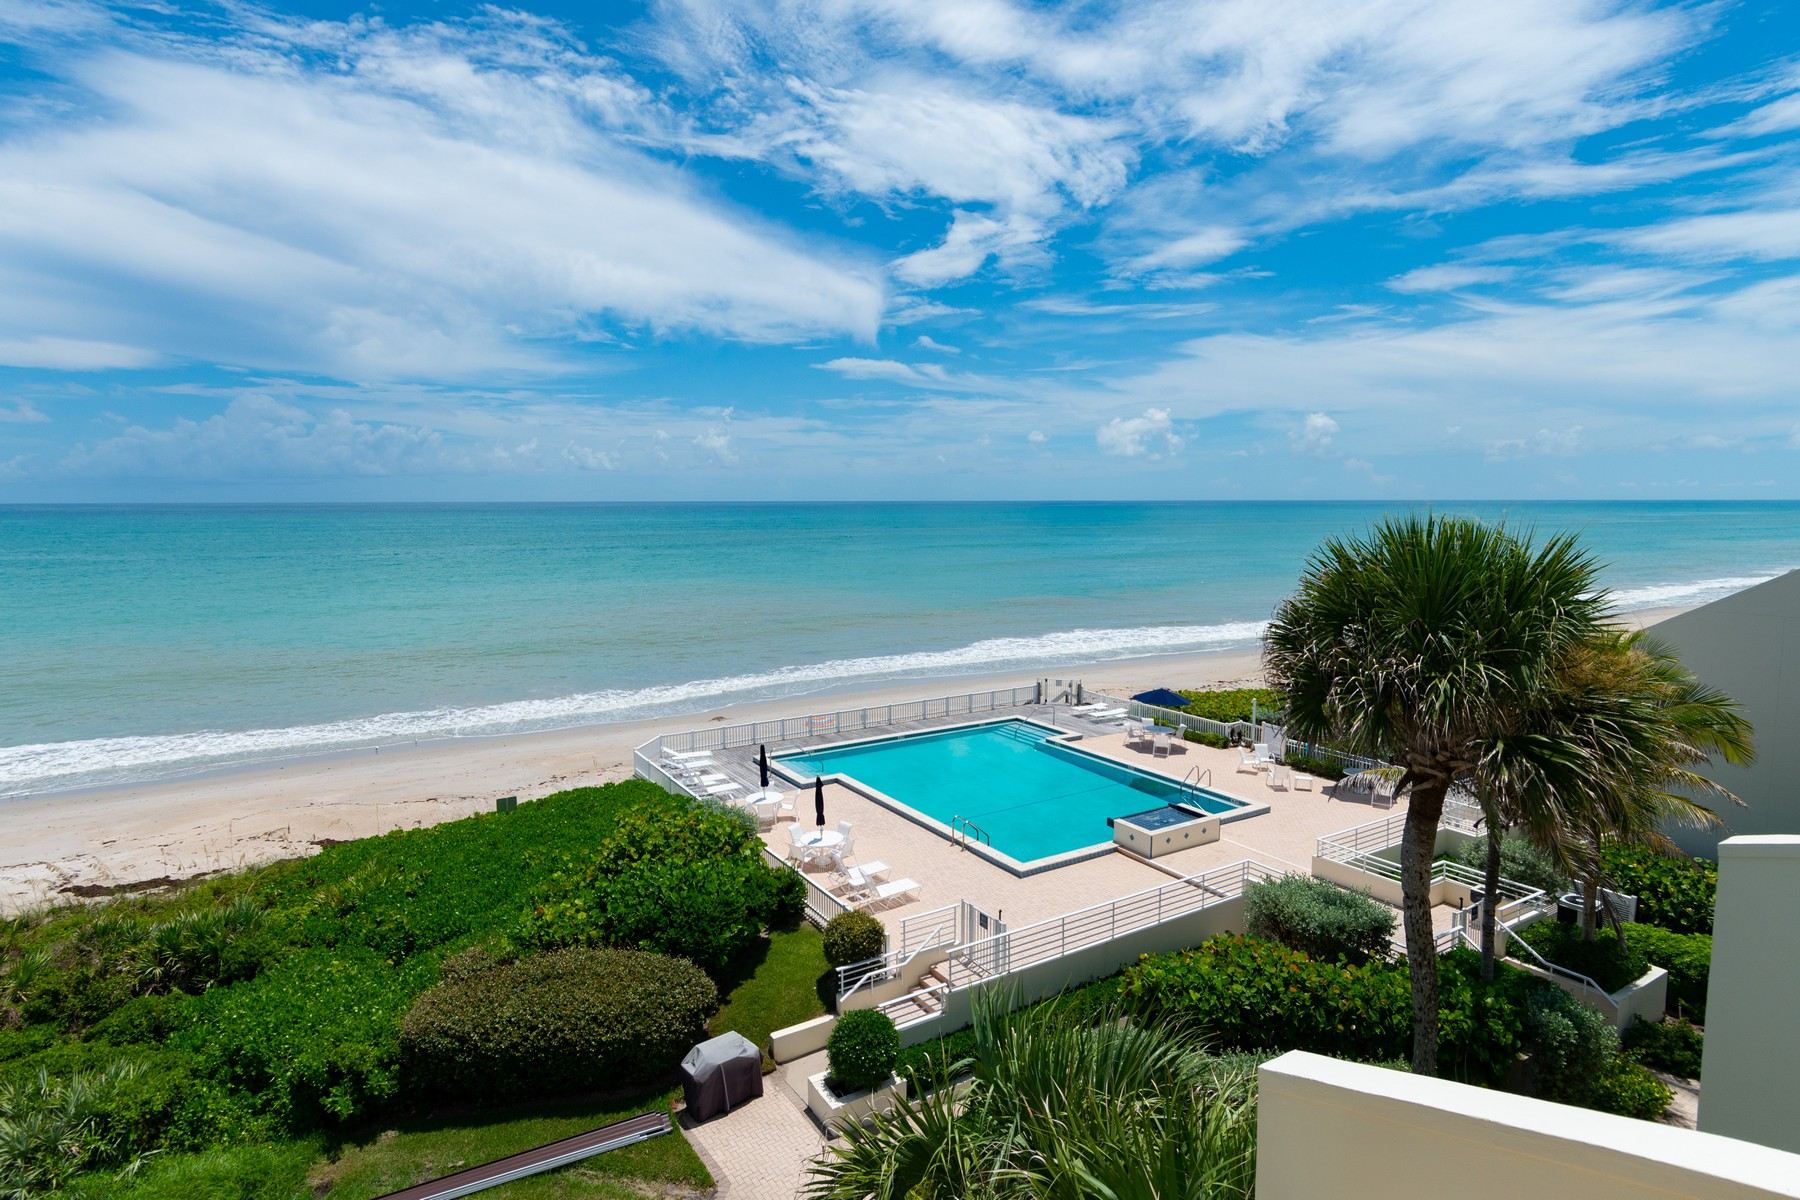 Property vì Bán tại Baytree Oceanfront Penthouse 8416 Oceanside Drive #F31 Indian River Shores, Florida 32963 Hoa Kỳ